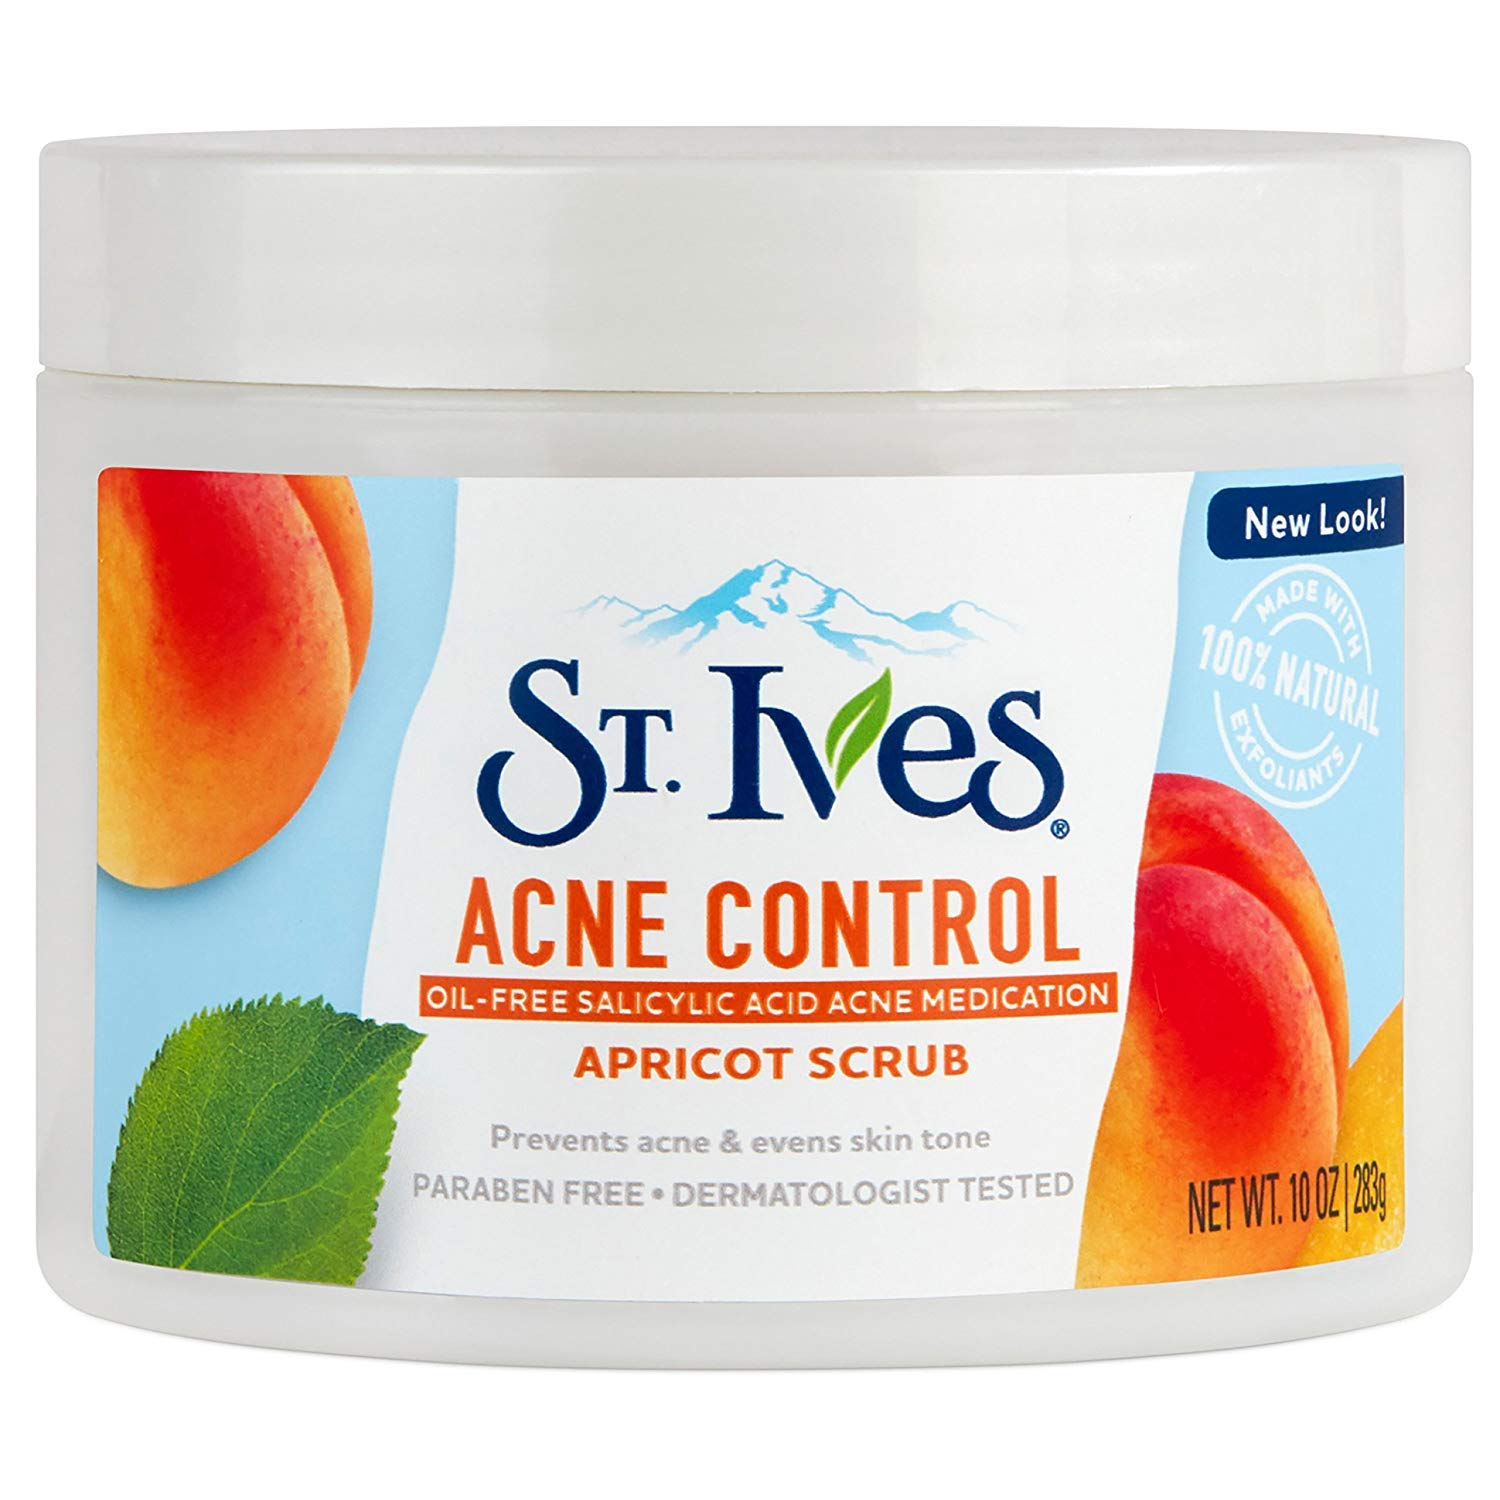 St. Ives Acne Control Apricot Scrub 10 oz (Pack of 3) by St. Ives